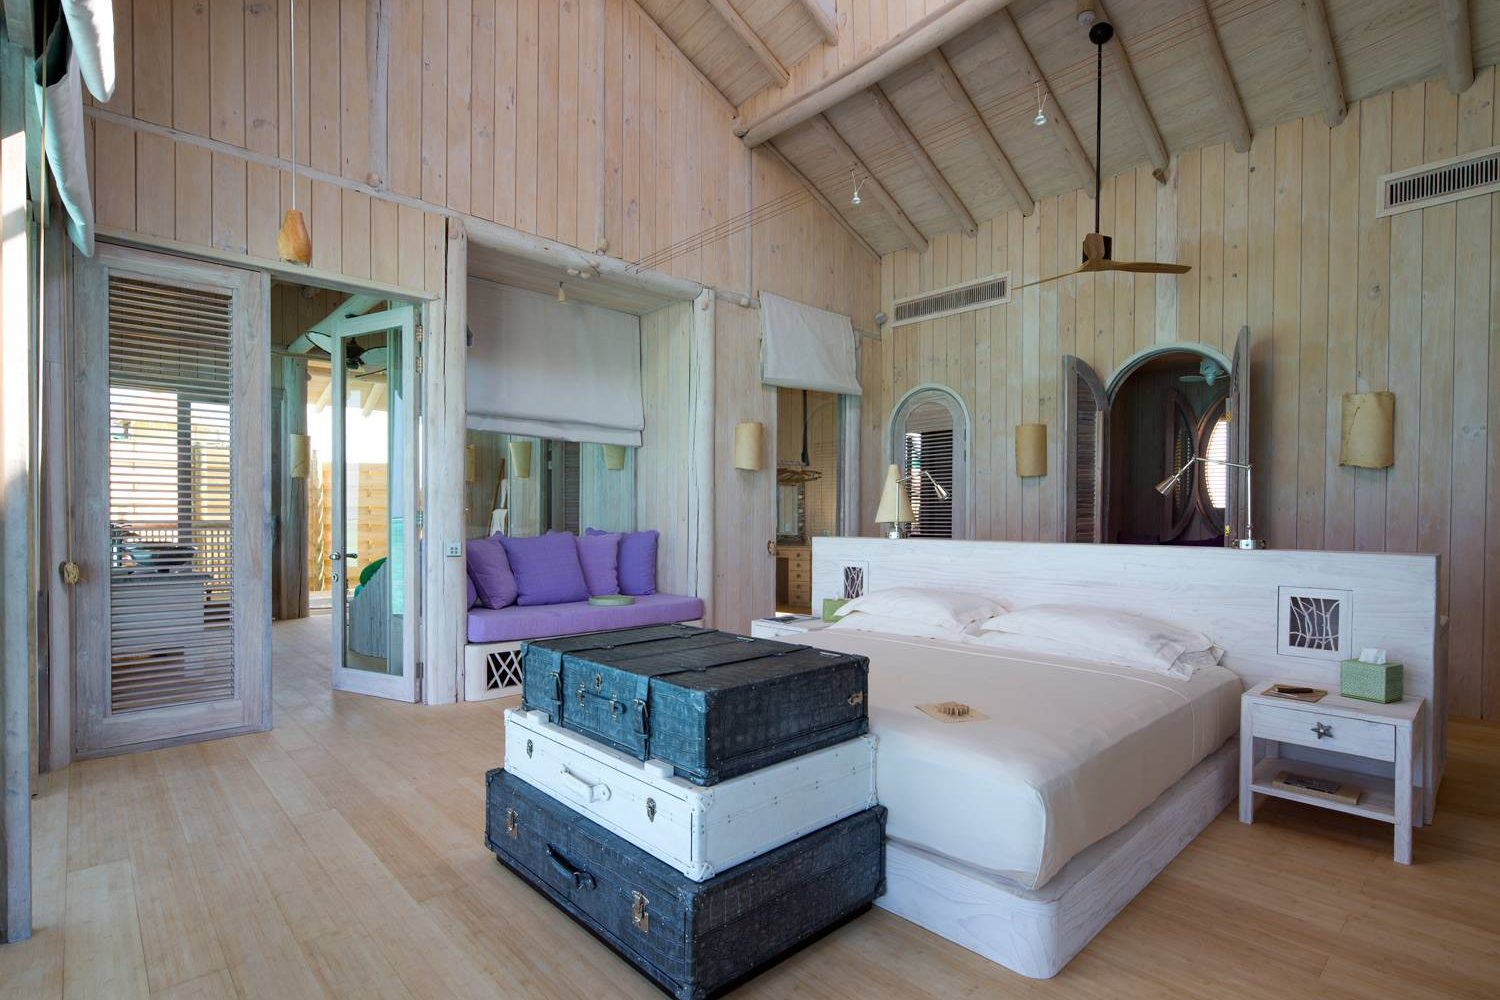 1-Bedroom-Overwater-Villa_Master-Bedroom-by-Richard-Waite-1500×1000